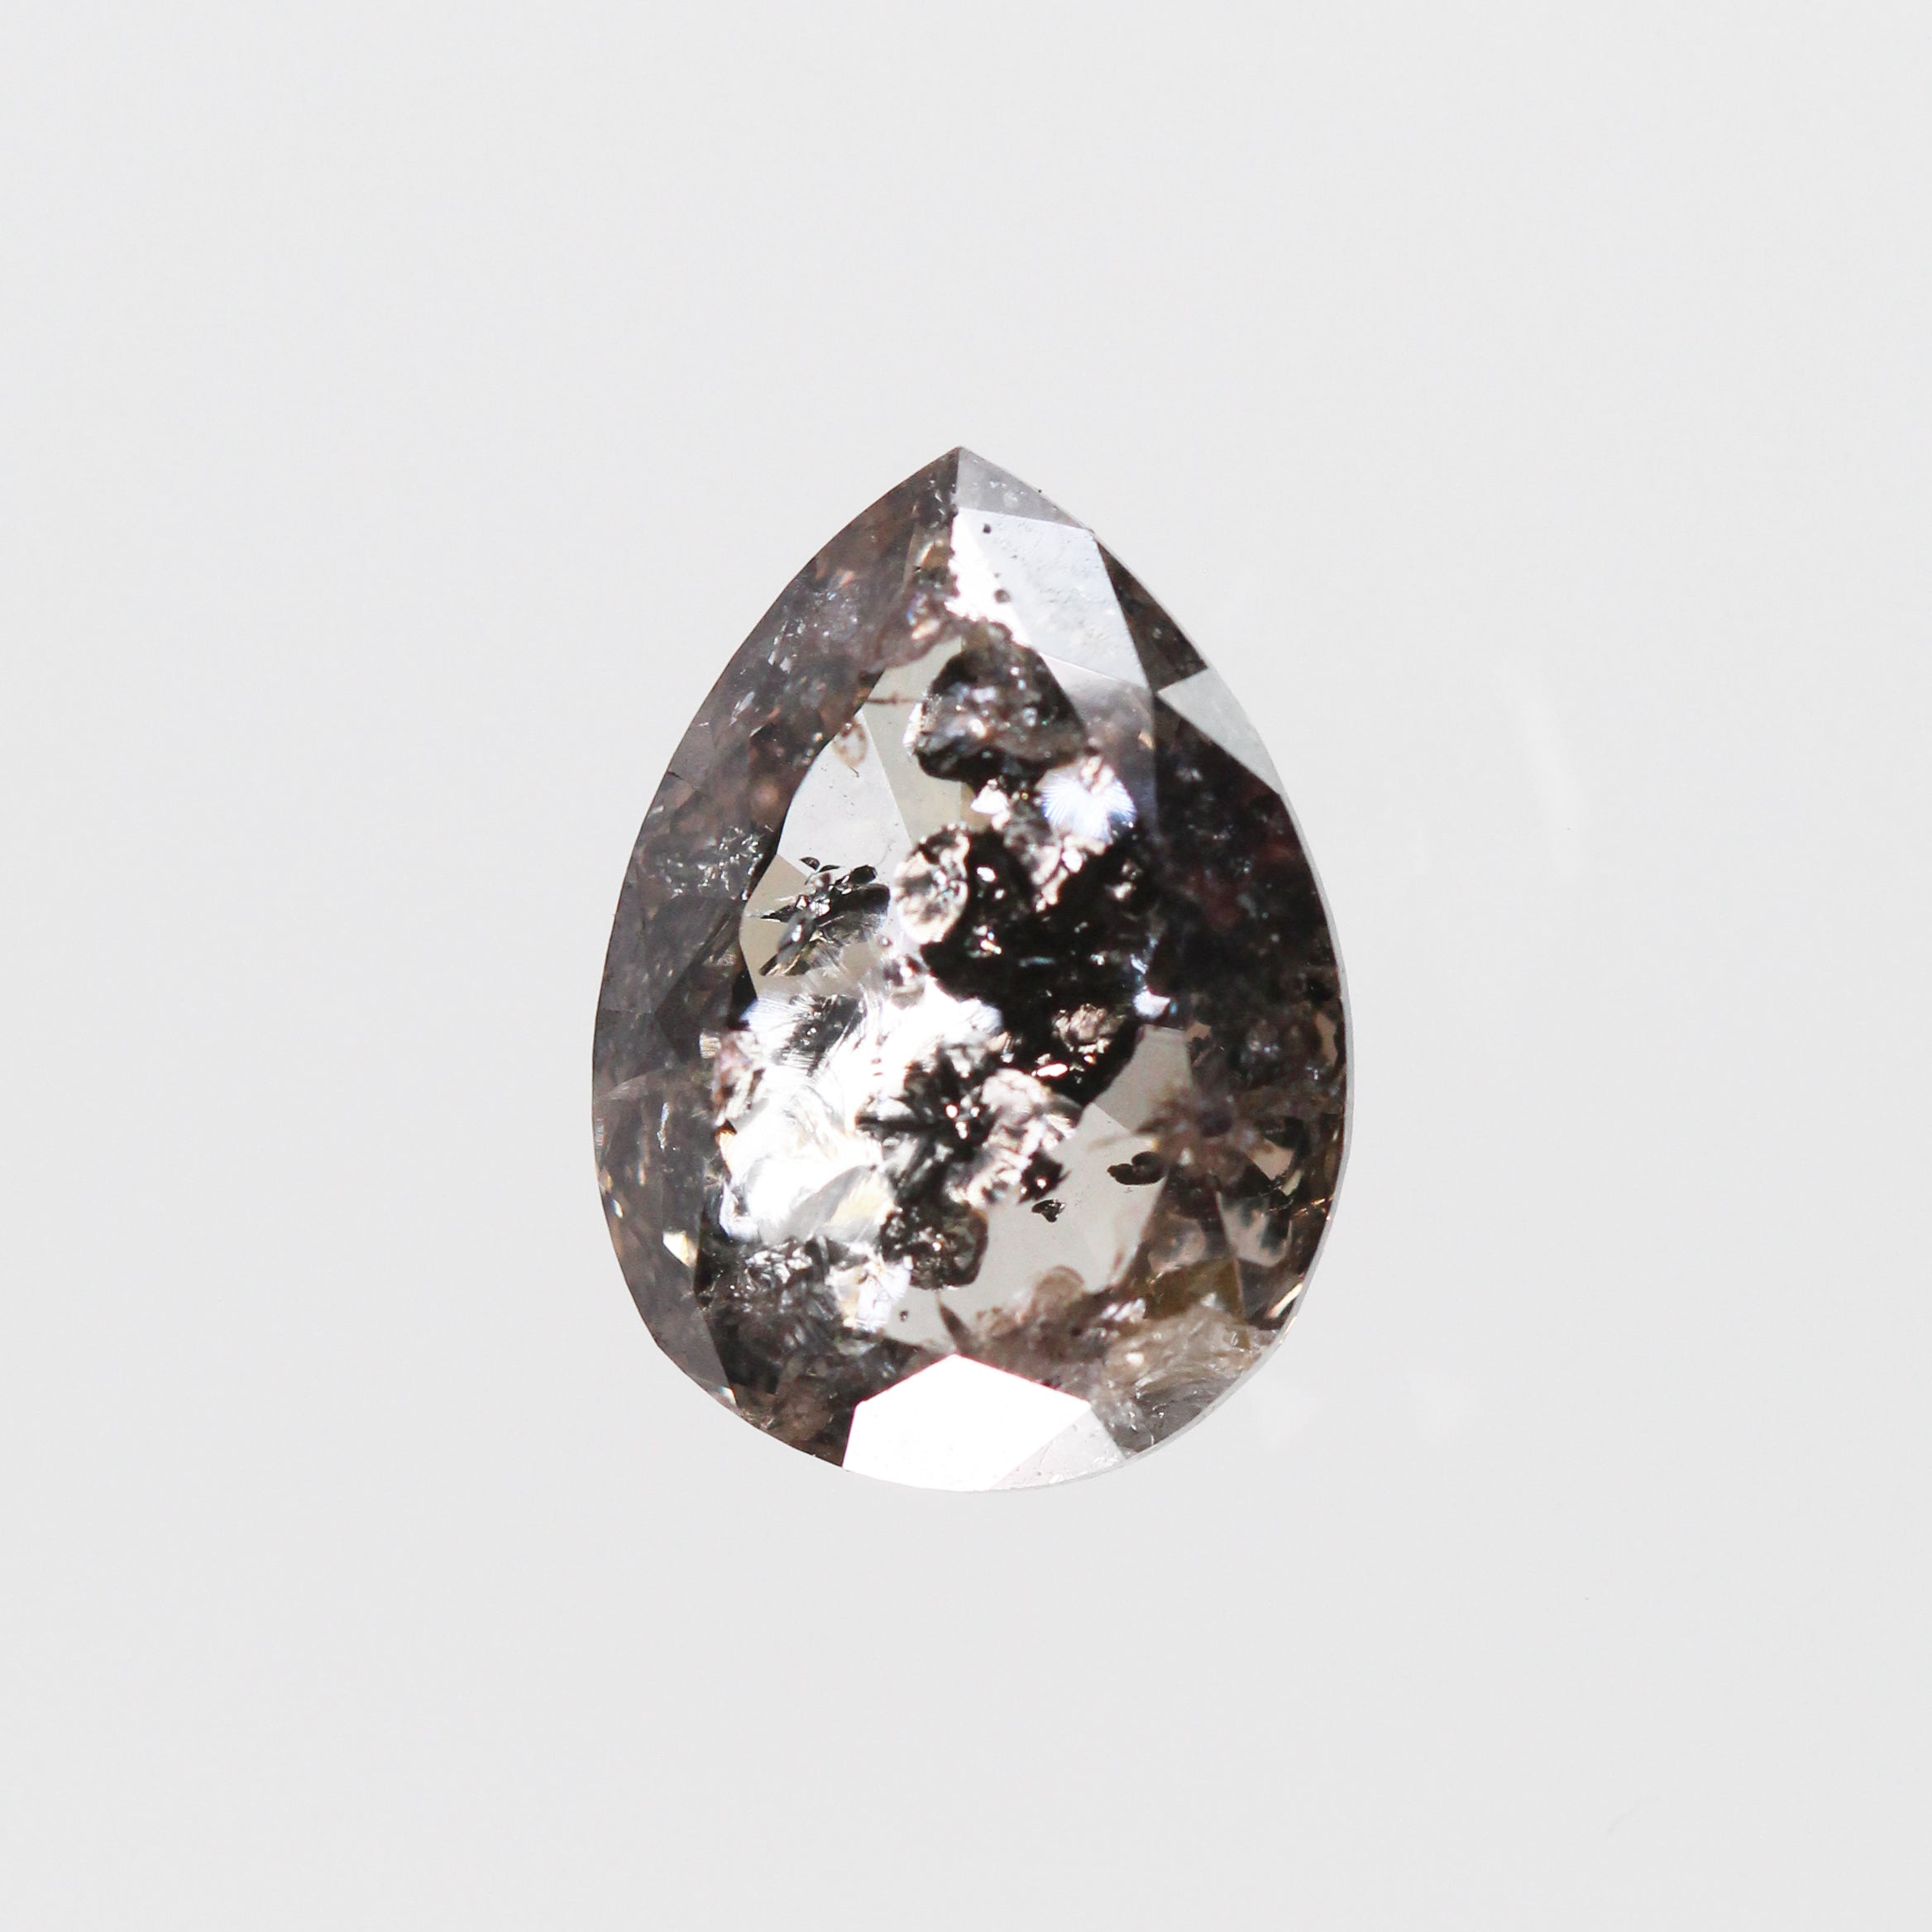 2.18 Carat Pear Celestial Diamond for Custom Work - Inventory Code PBB218 - Celestial Diamonds ® by Midwinter Co.